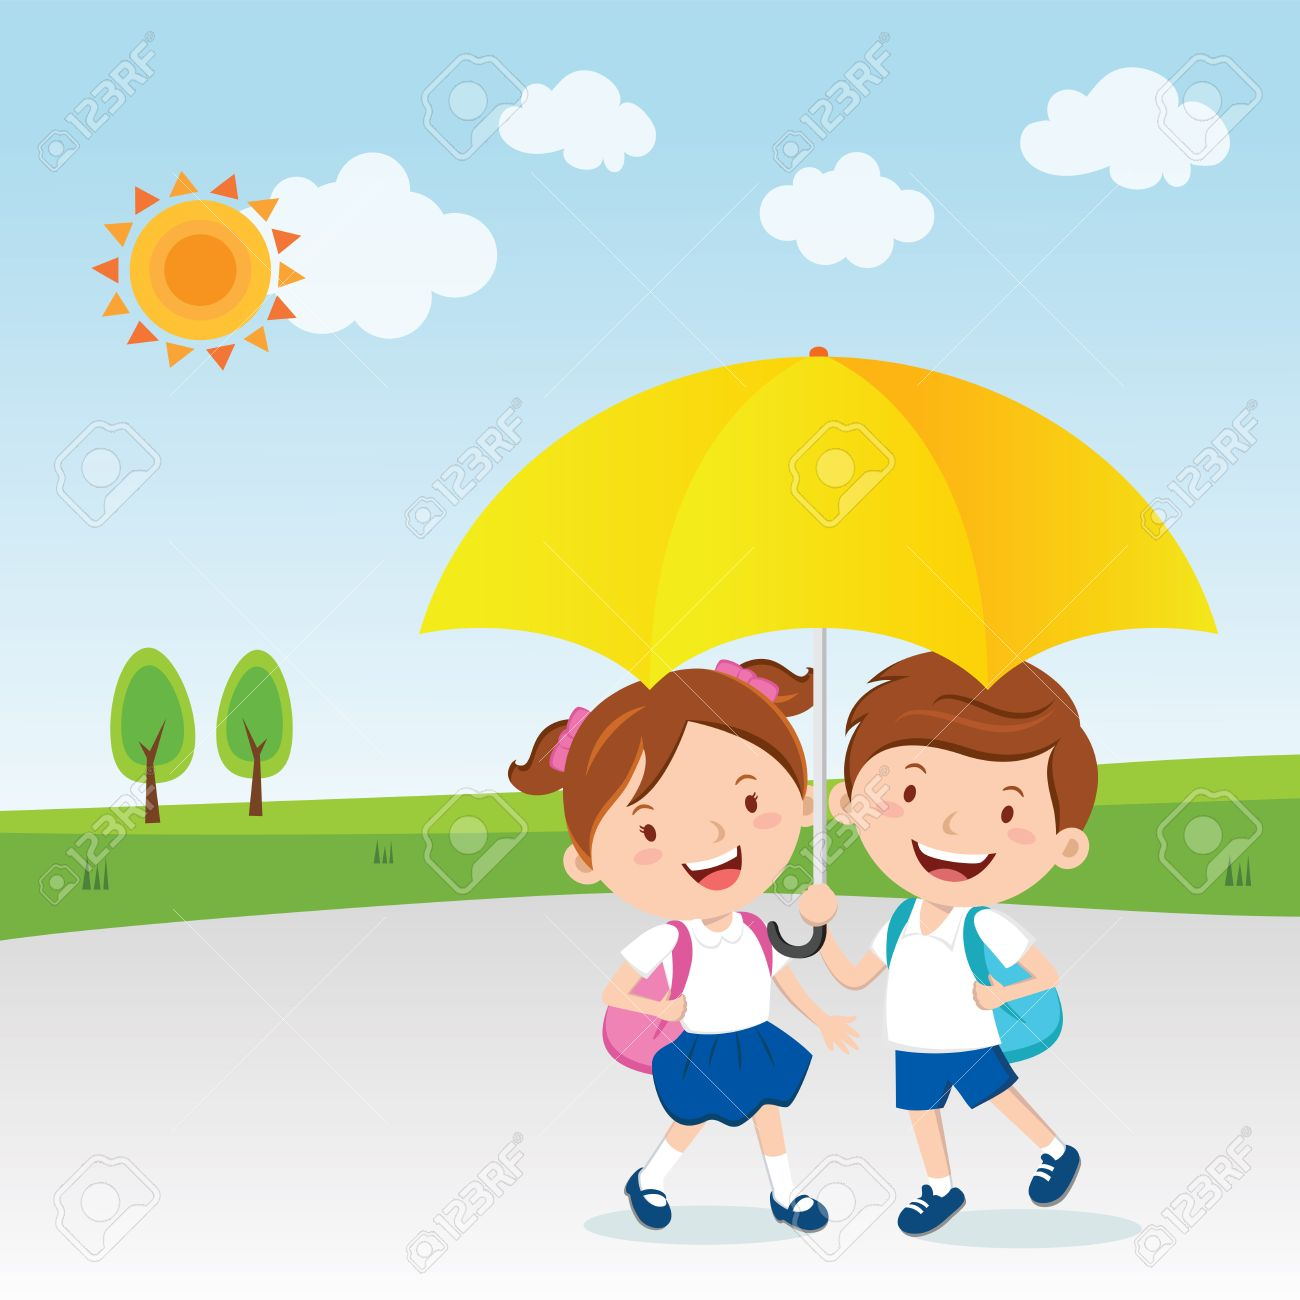 children under the umbrella sunny day royalty free cliparts rh 123rf com sunny day clipart free sunny winter day clipart